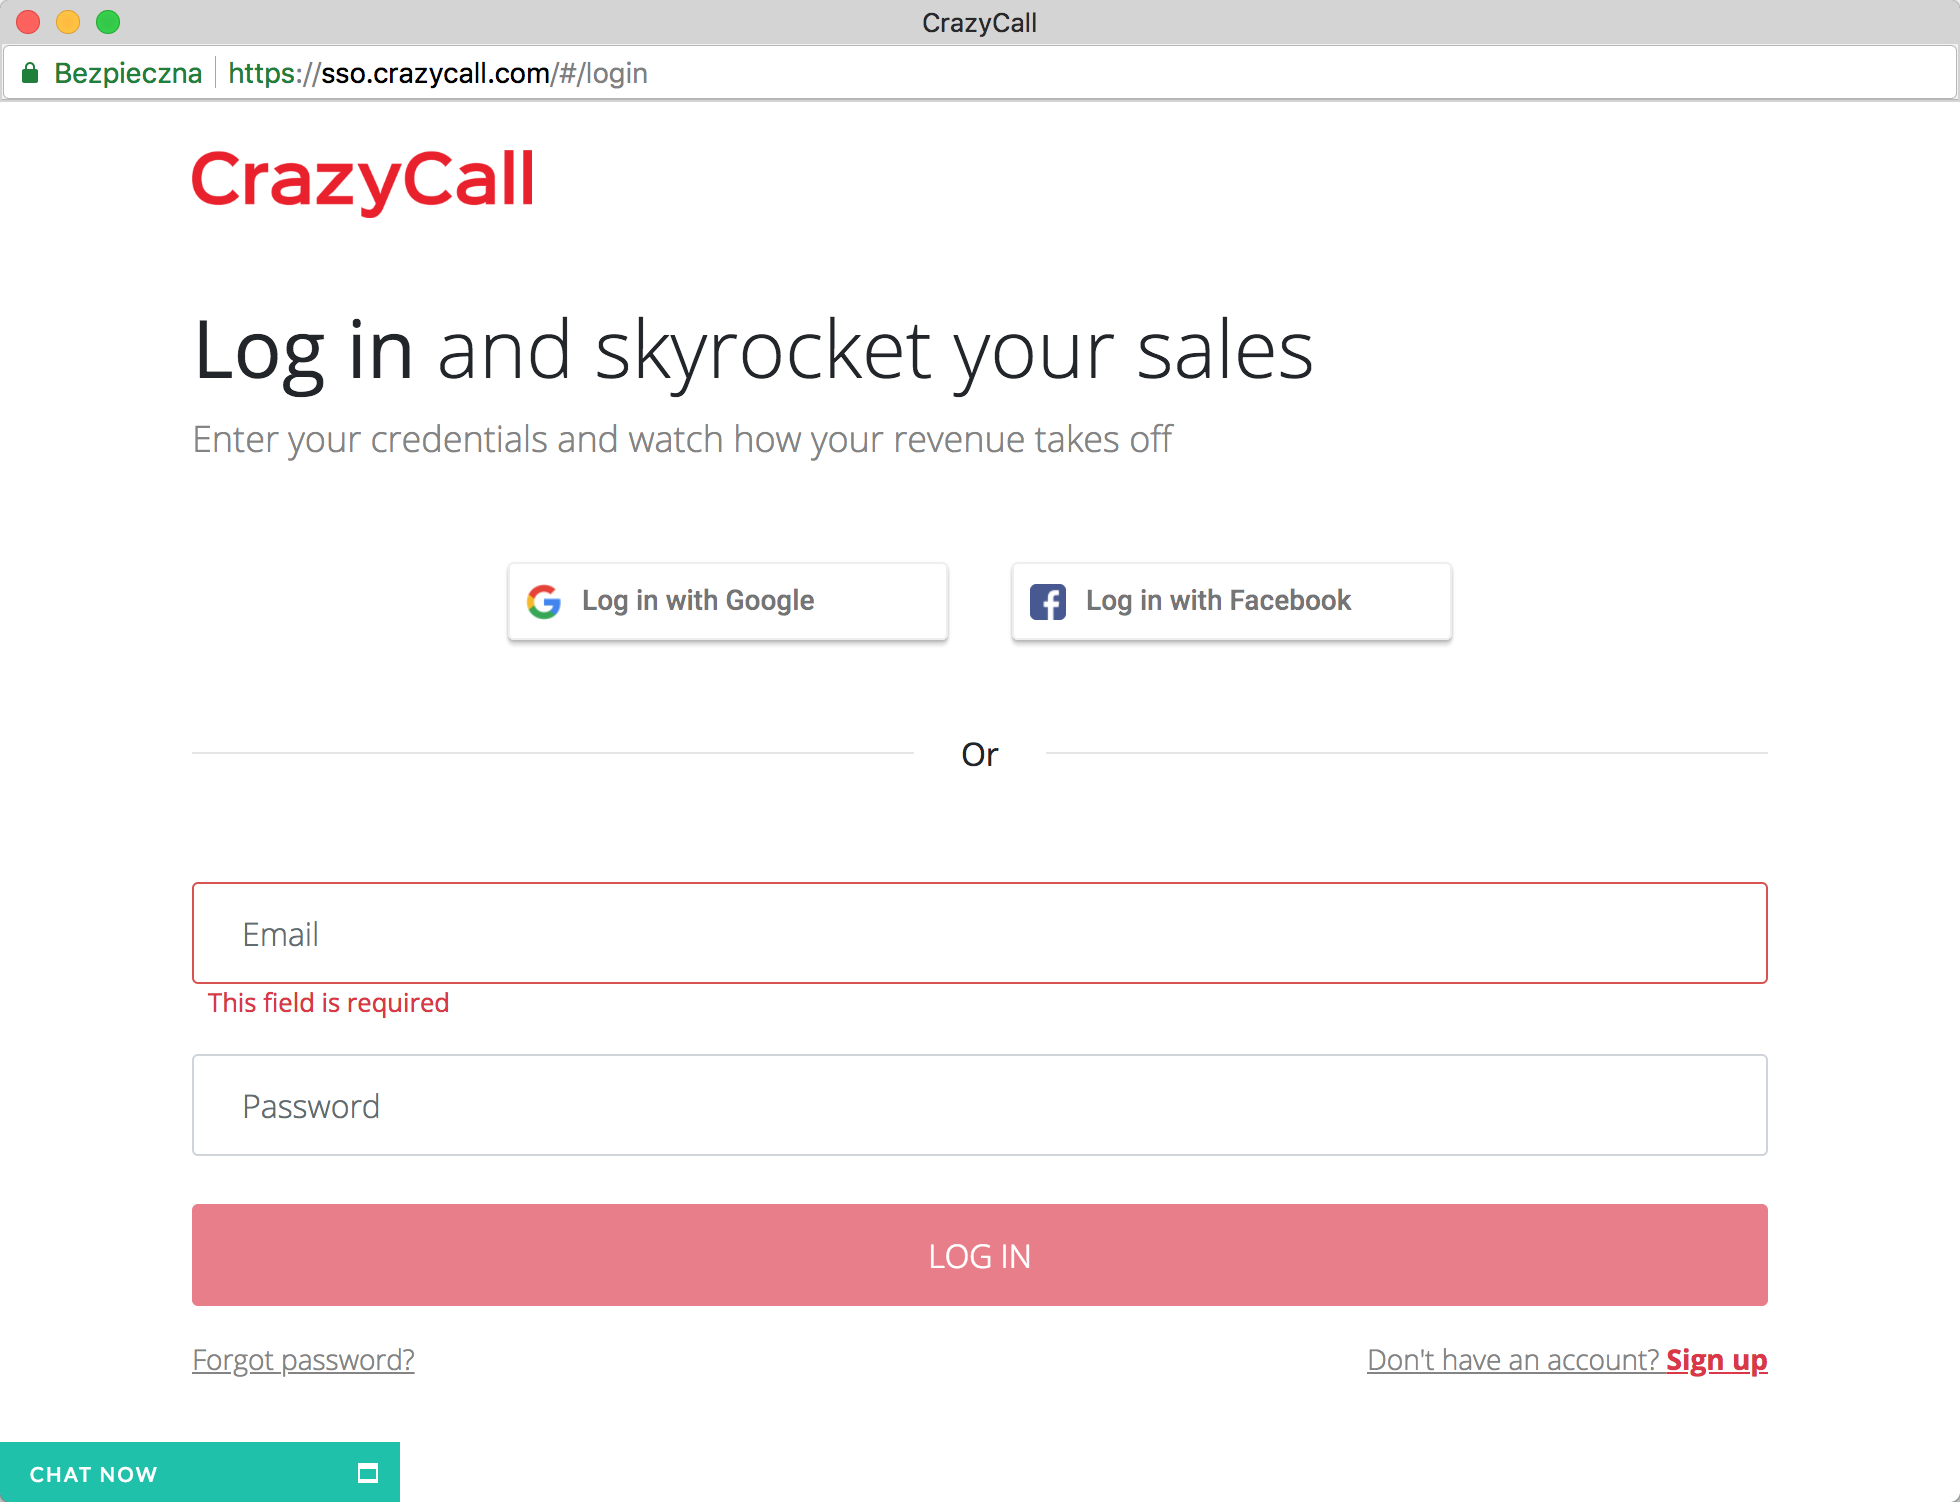 Login to CrazyCall